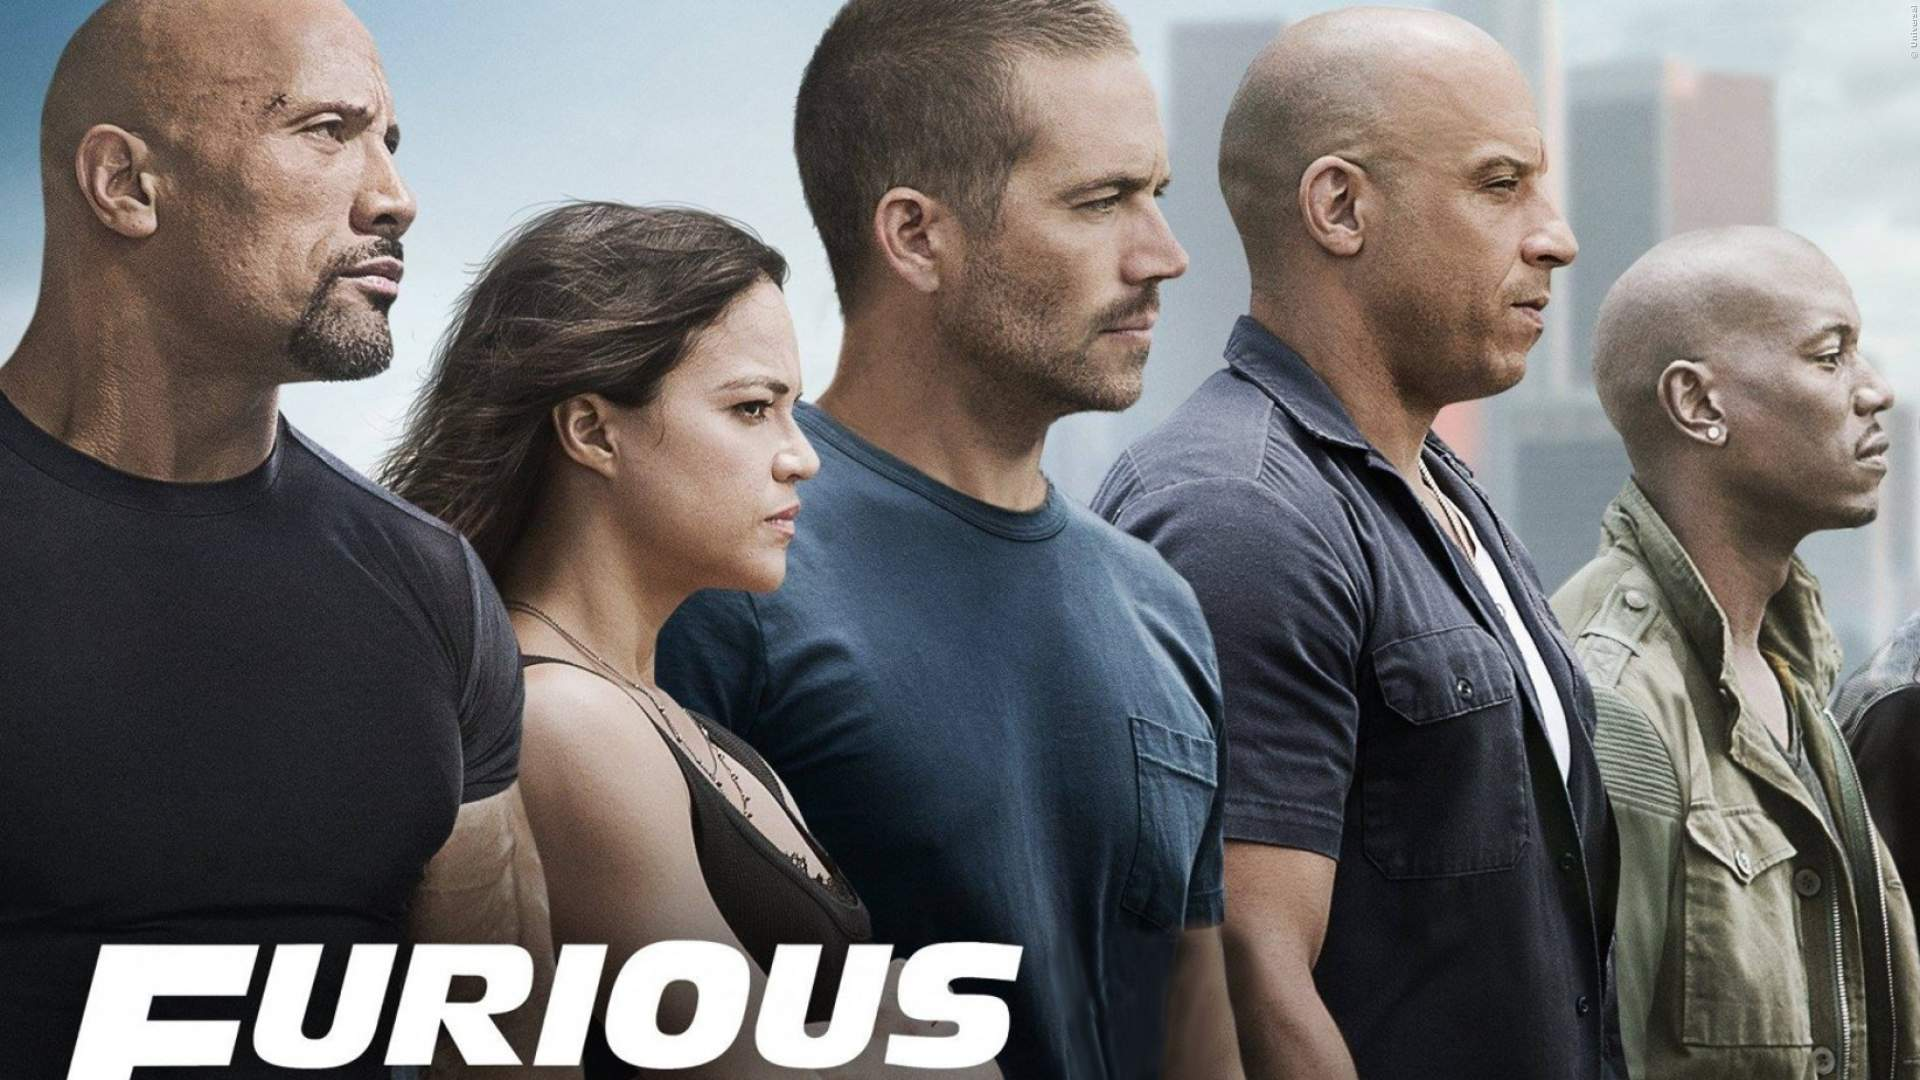 fast and furious ranking aller filme trailerseite film tv. Black Bedroom Furniture Sets. Home Design Ideas